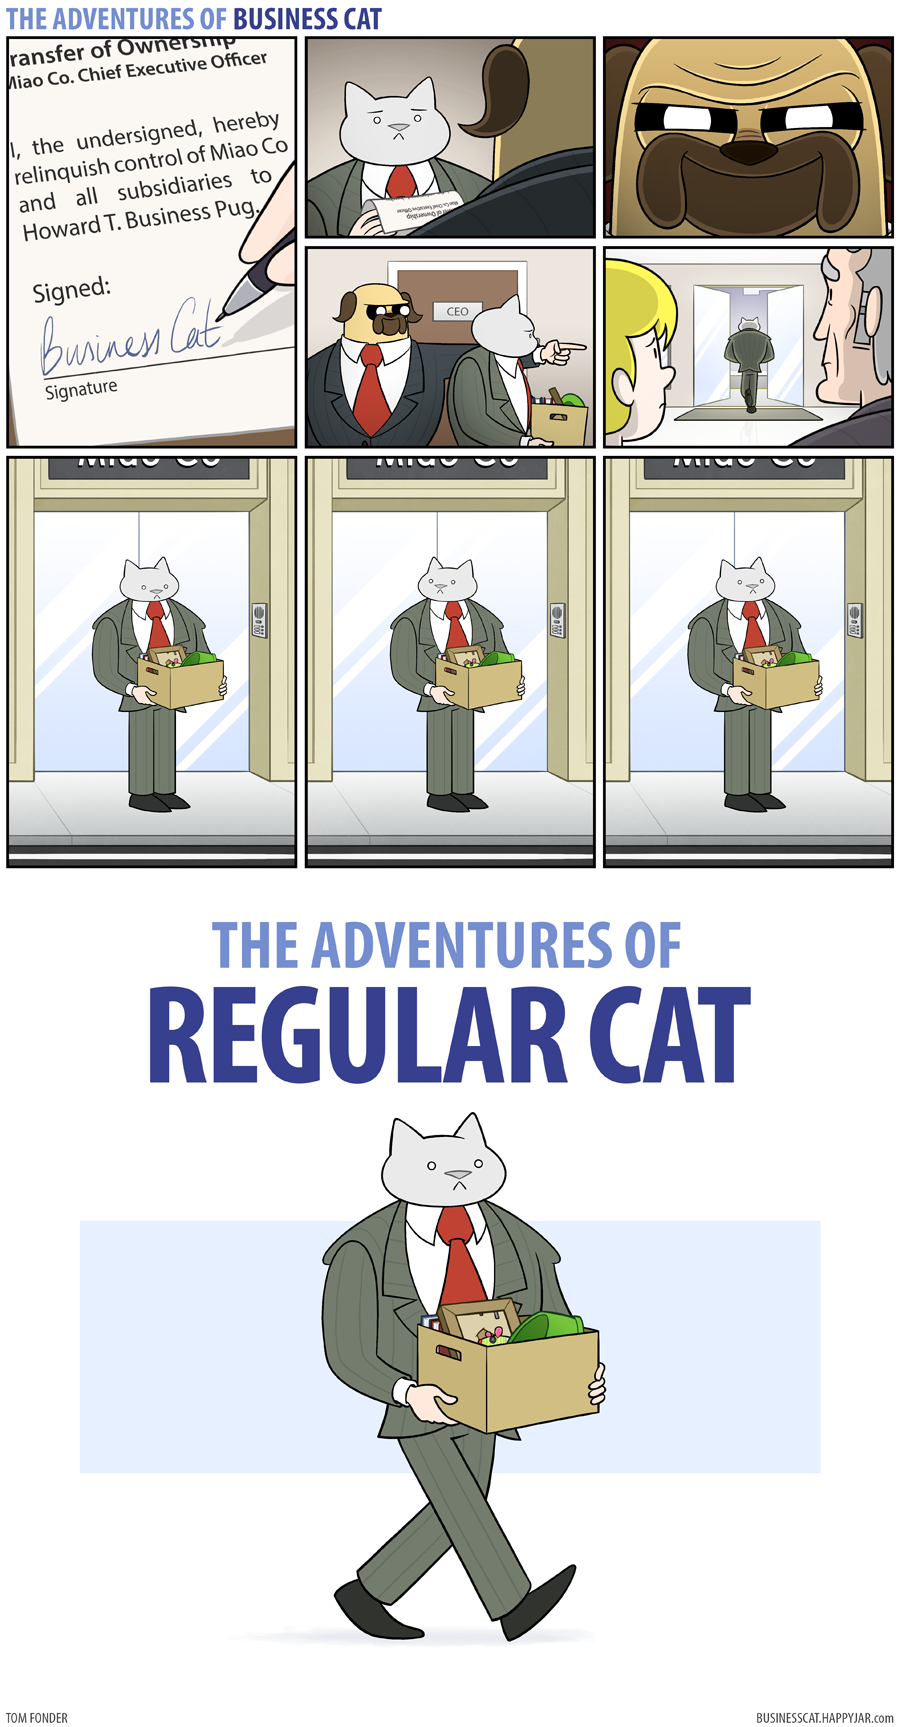 The Adventures of Business Cat - Changeover by tomfonder